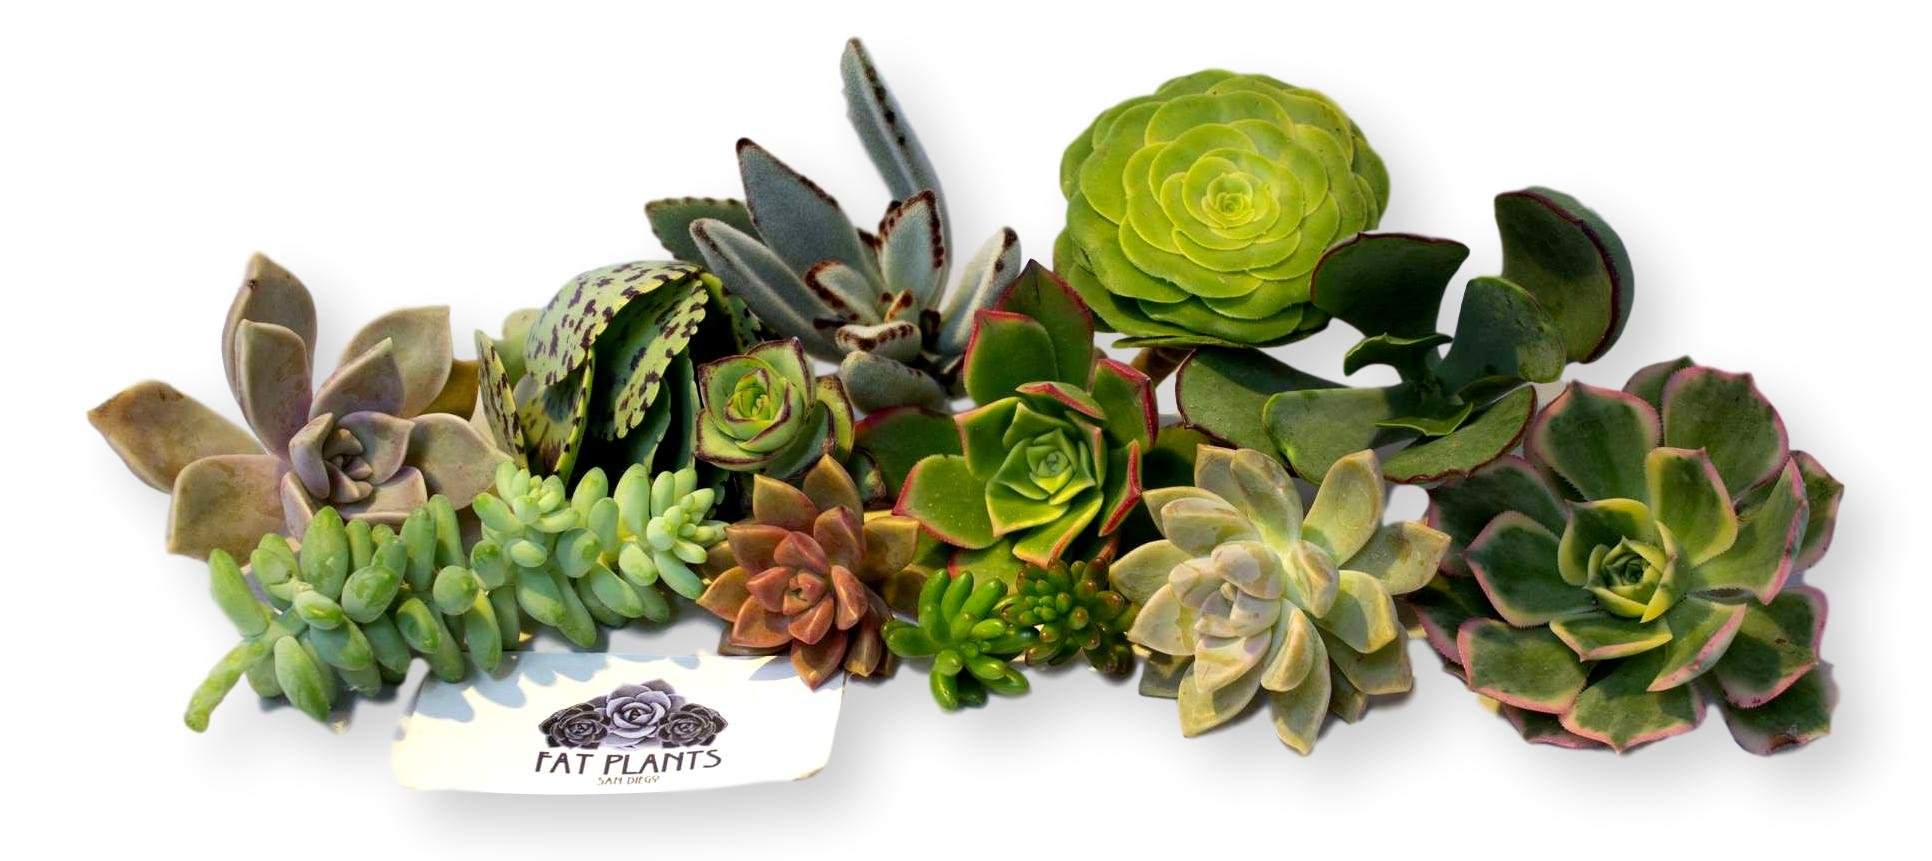 Fat Plants San Diego Ten Gorgeous Succulent Cuttings indoor